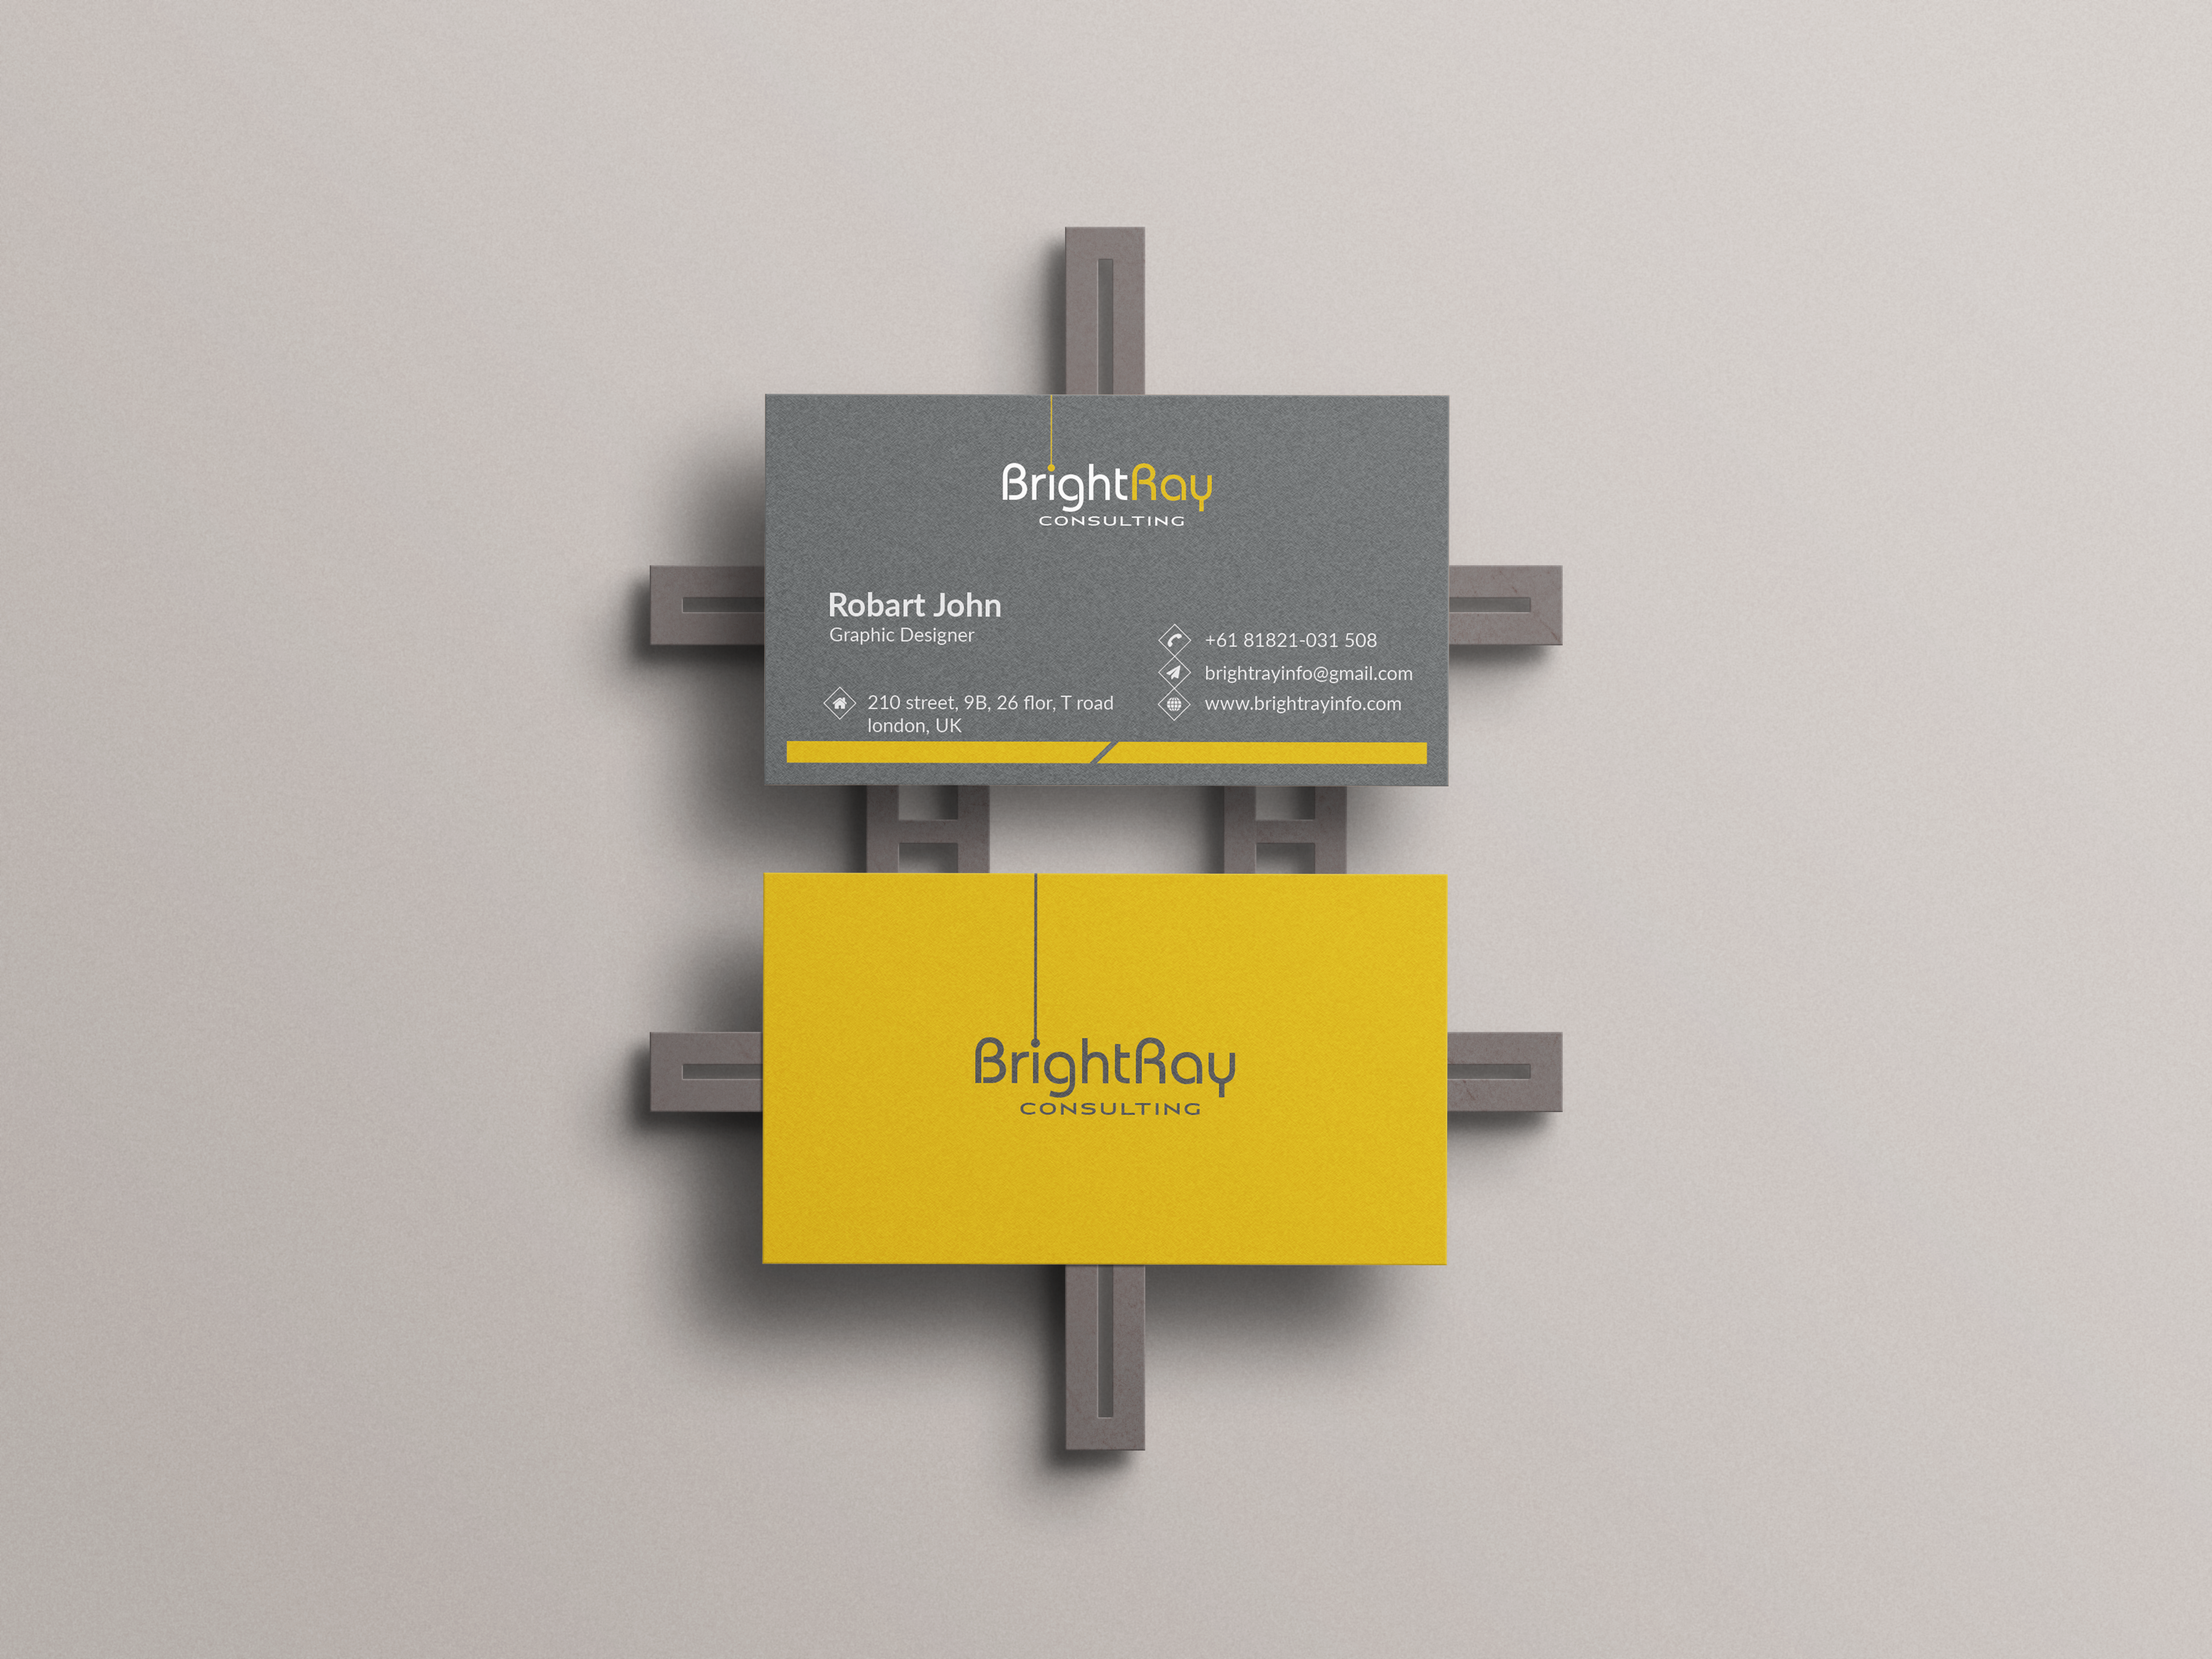 I will design professional eye catchy business card design